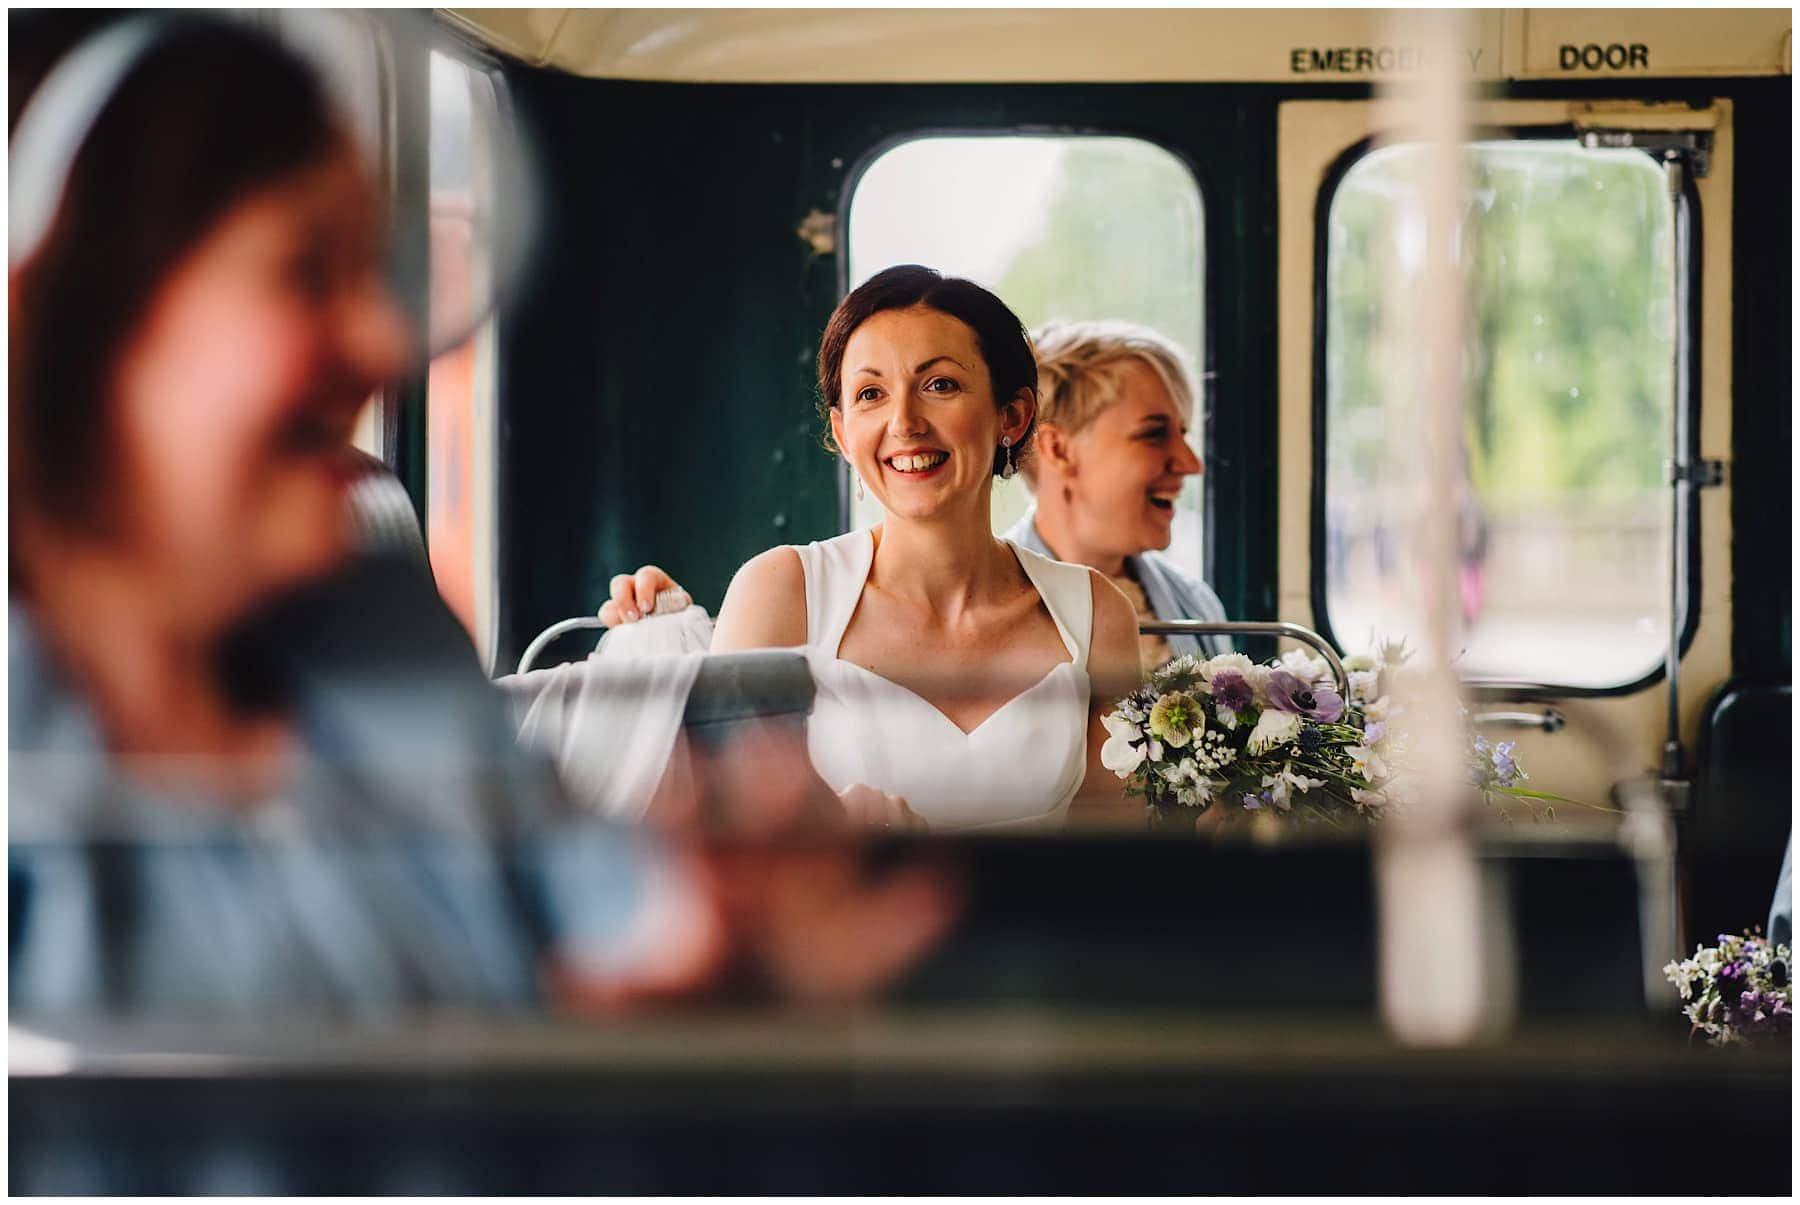 Oxfordshire wedding Photographer J S Coates Wedding Photography. Oxford Town Hall & The Perch Pub 26